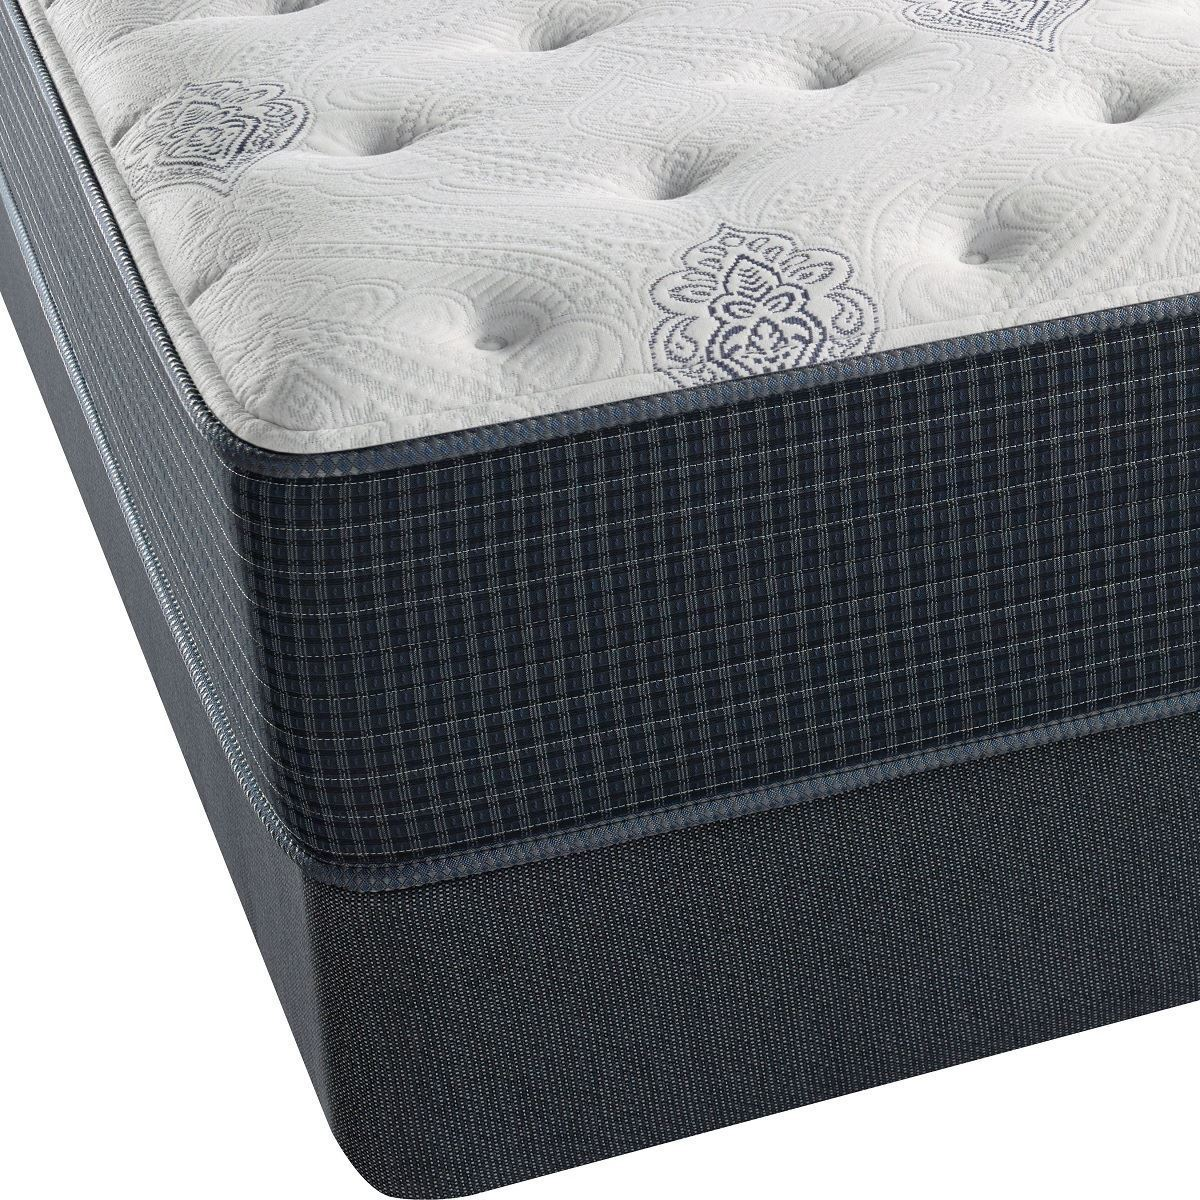 A Simmons Beautyrest Mattress for a Child.